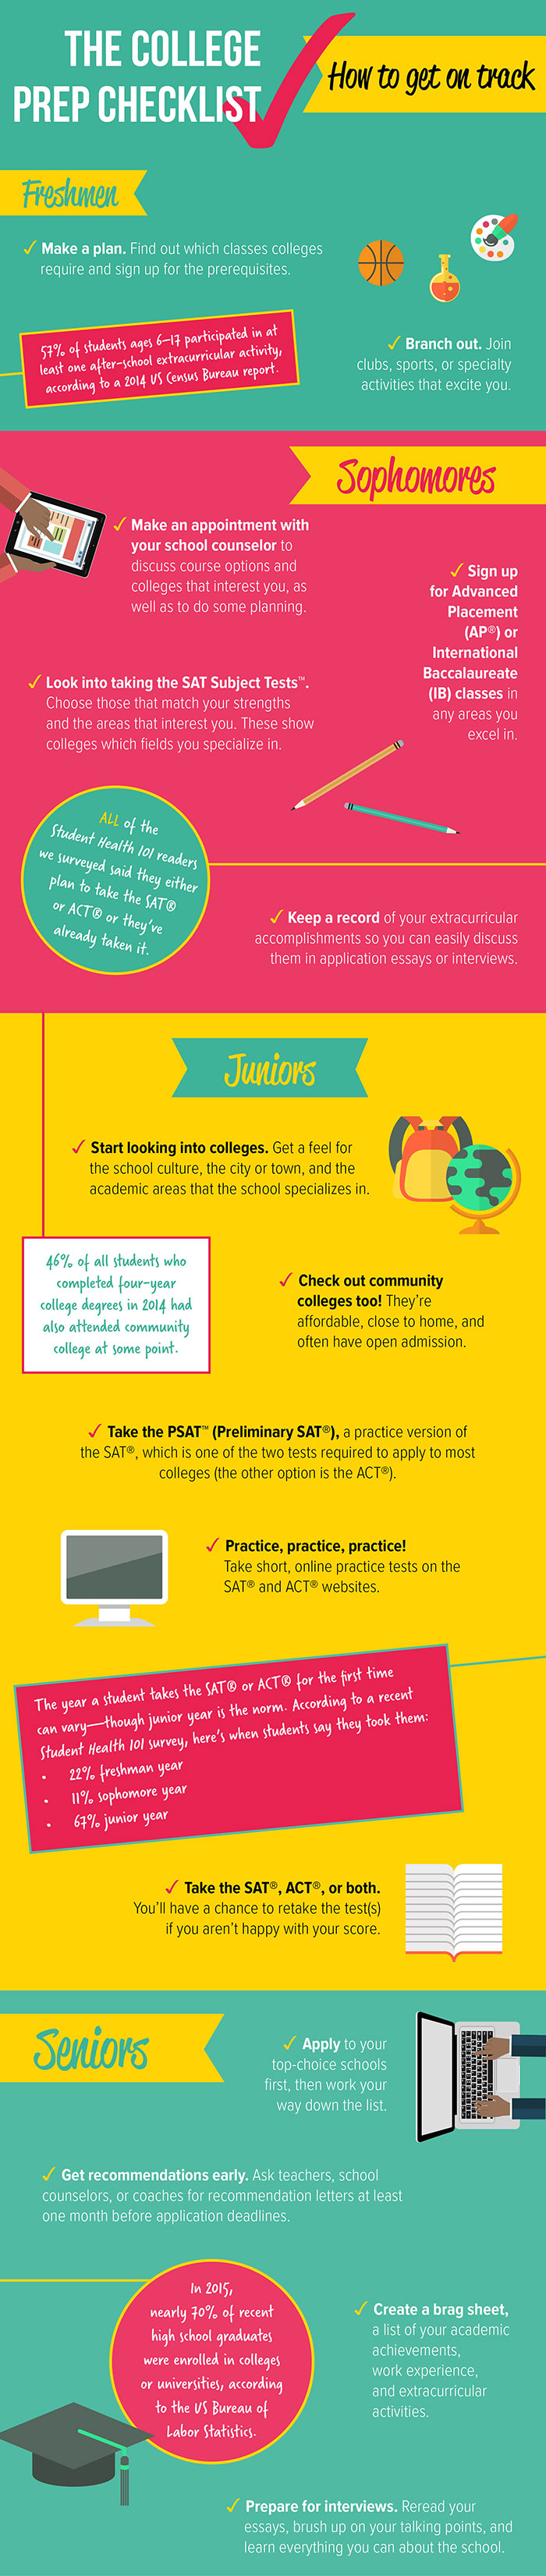 College checklist infographic for freshmen, sophomores, juniors, and seniors